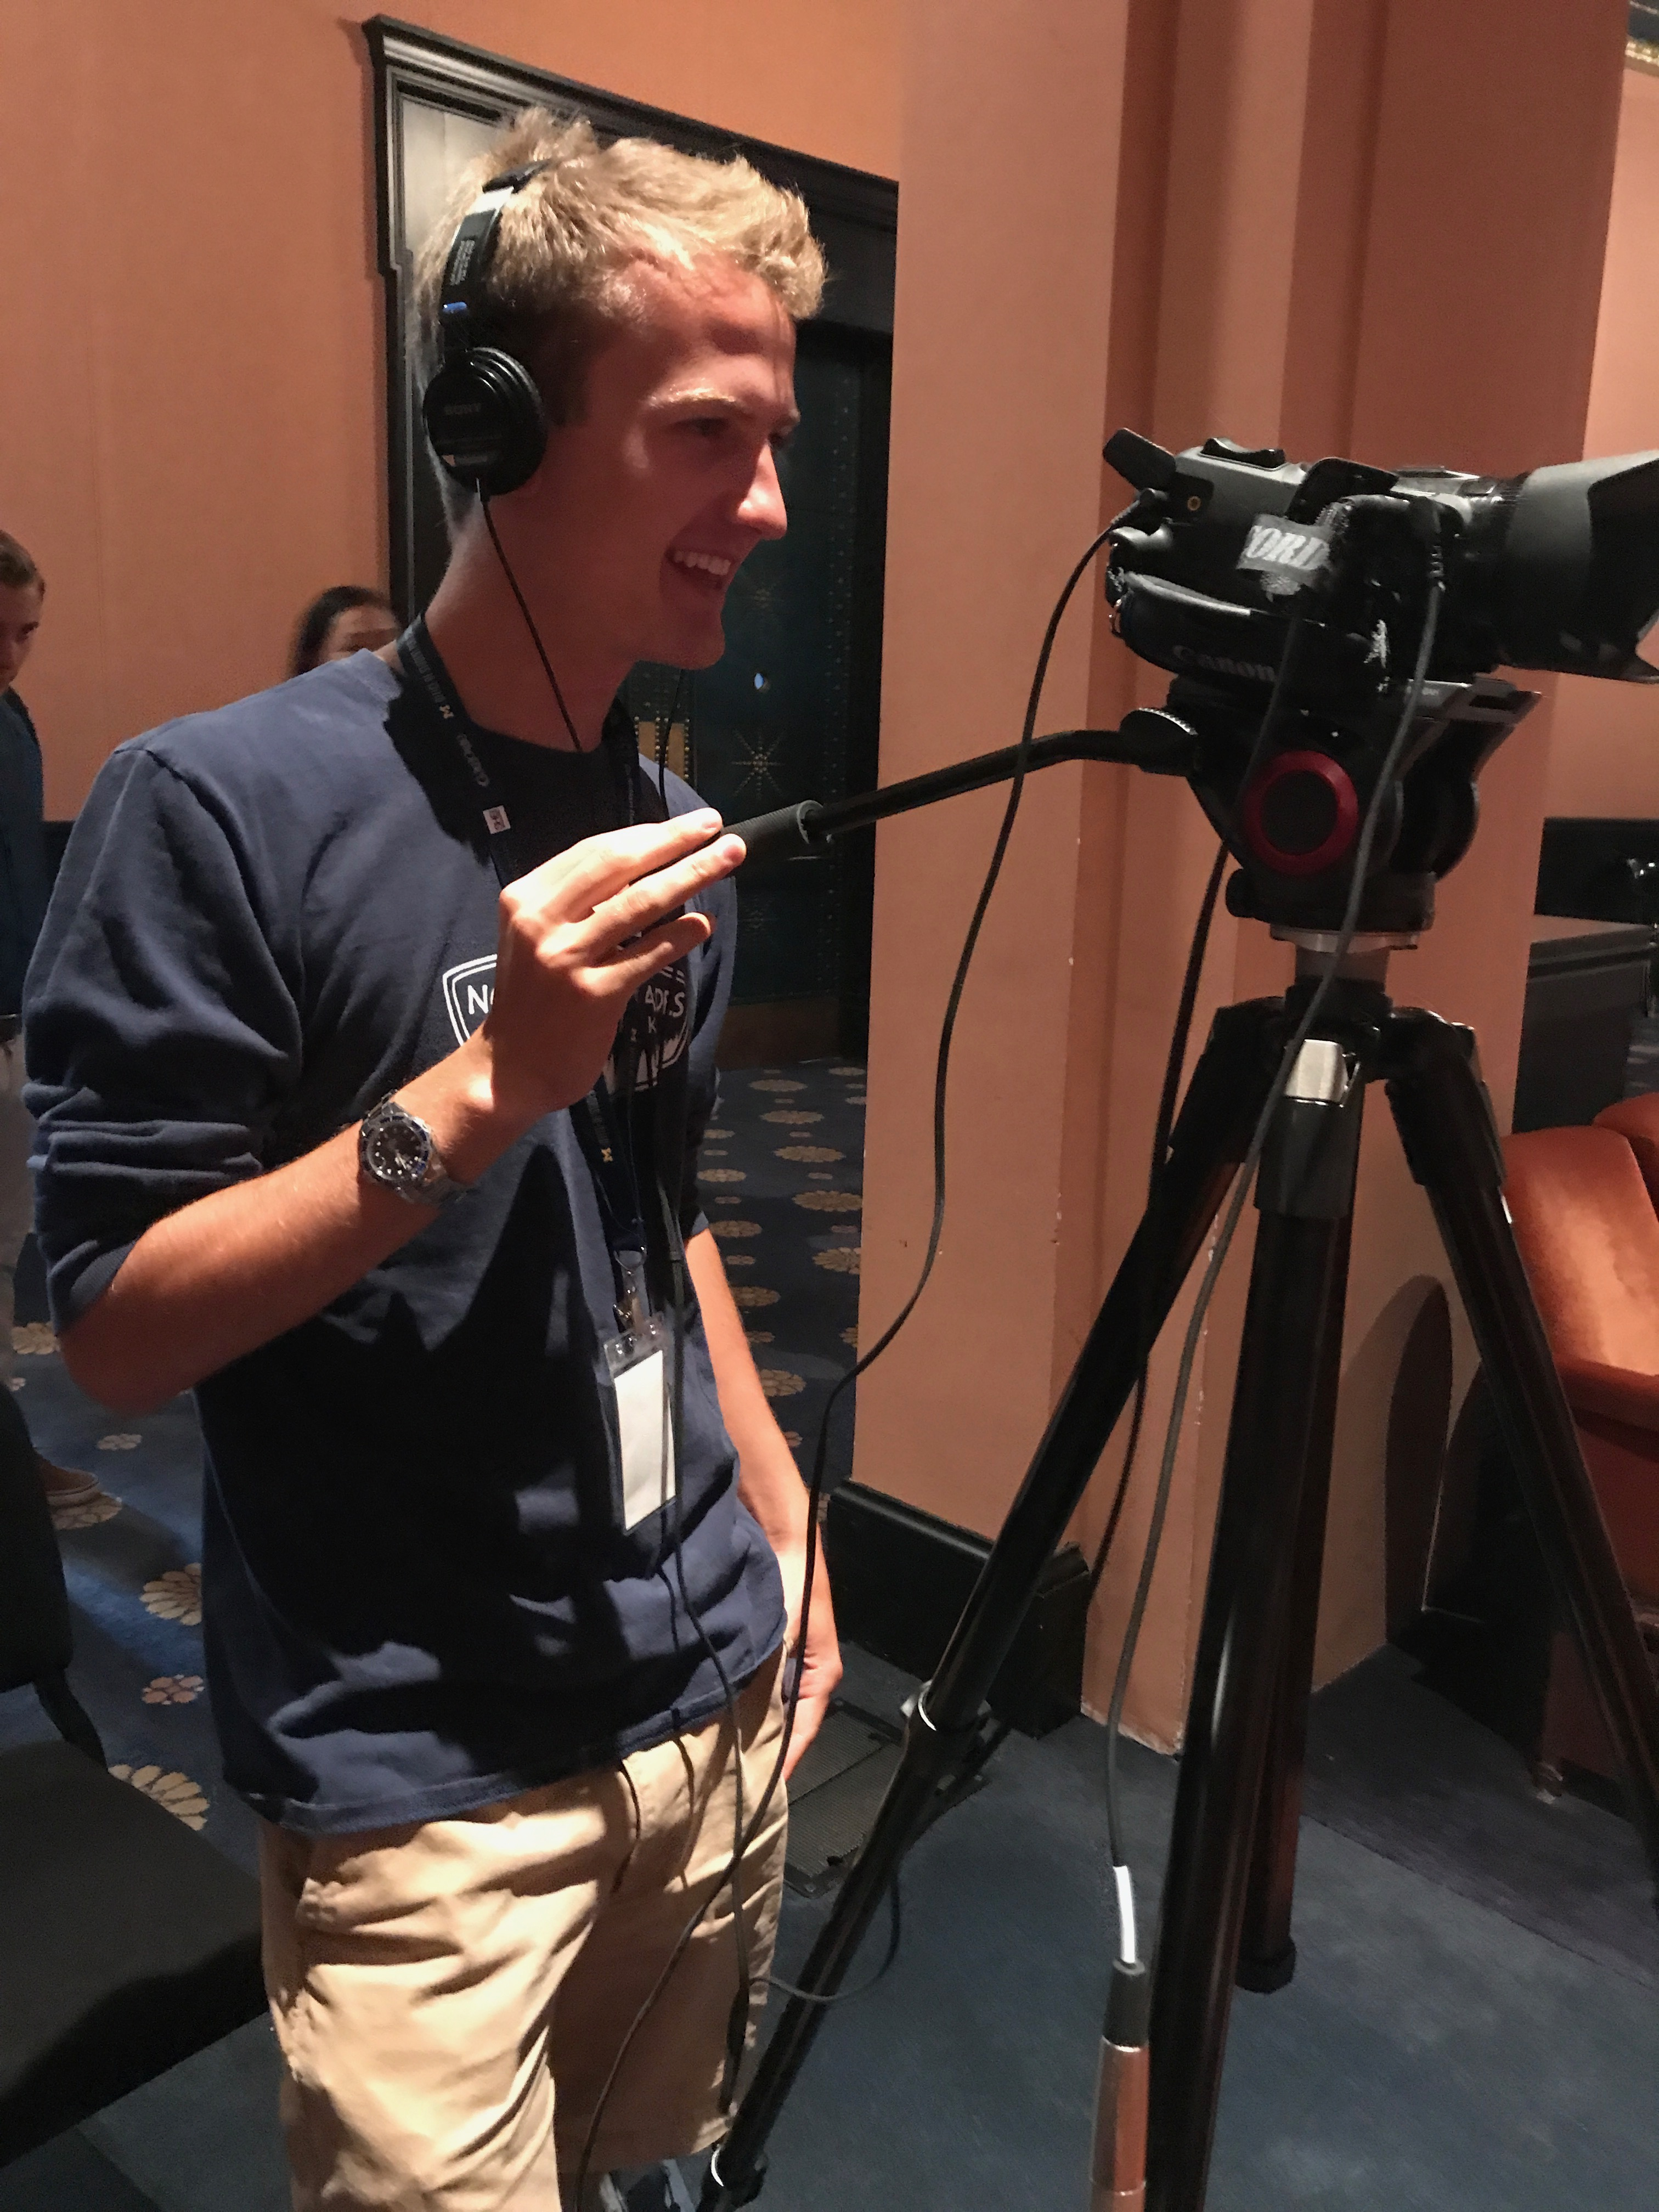 Abe Lofy, Daily videographer